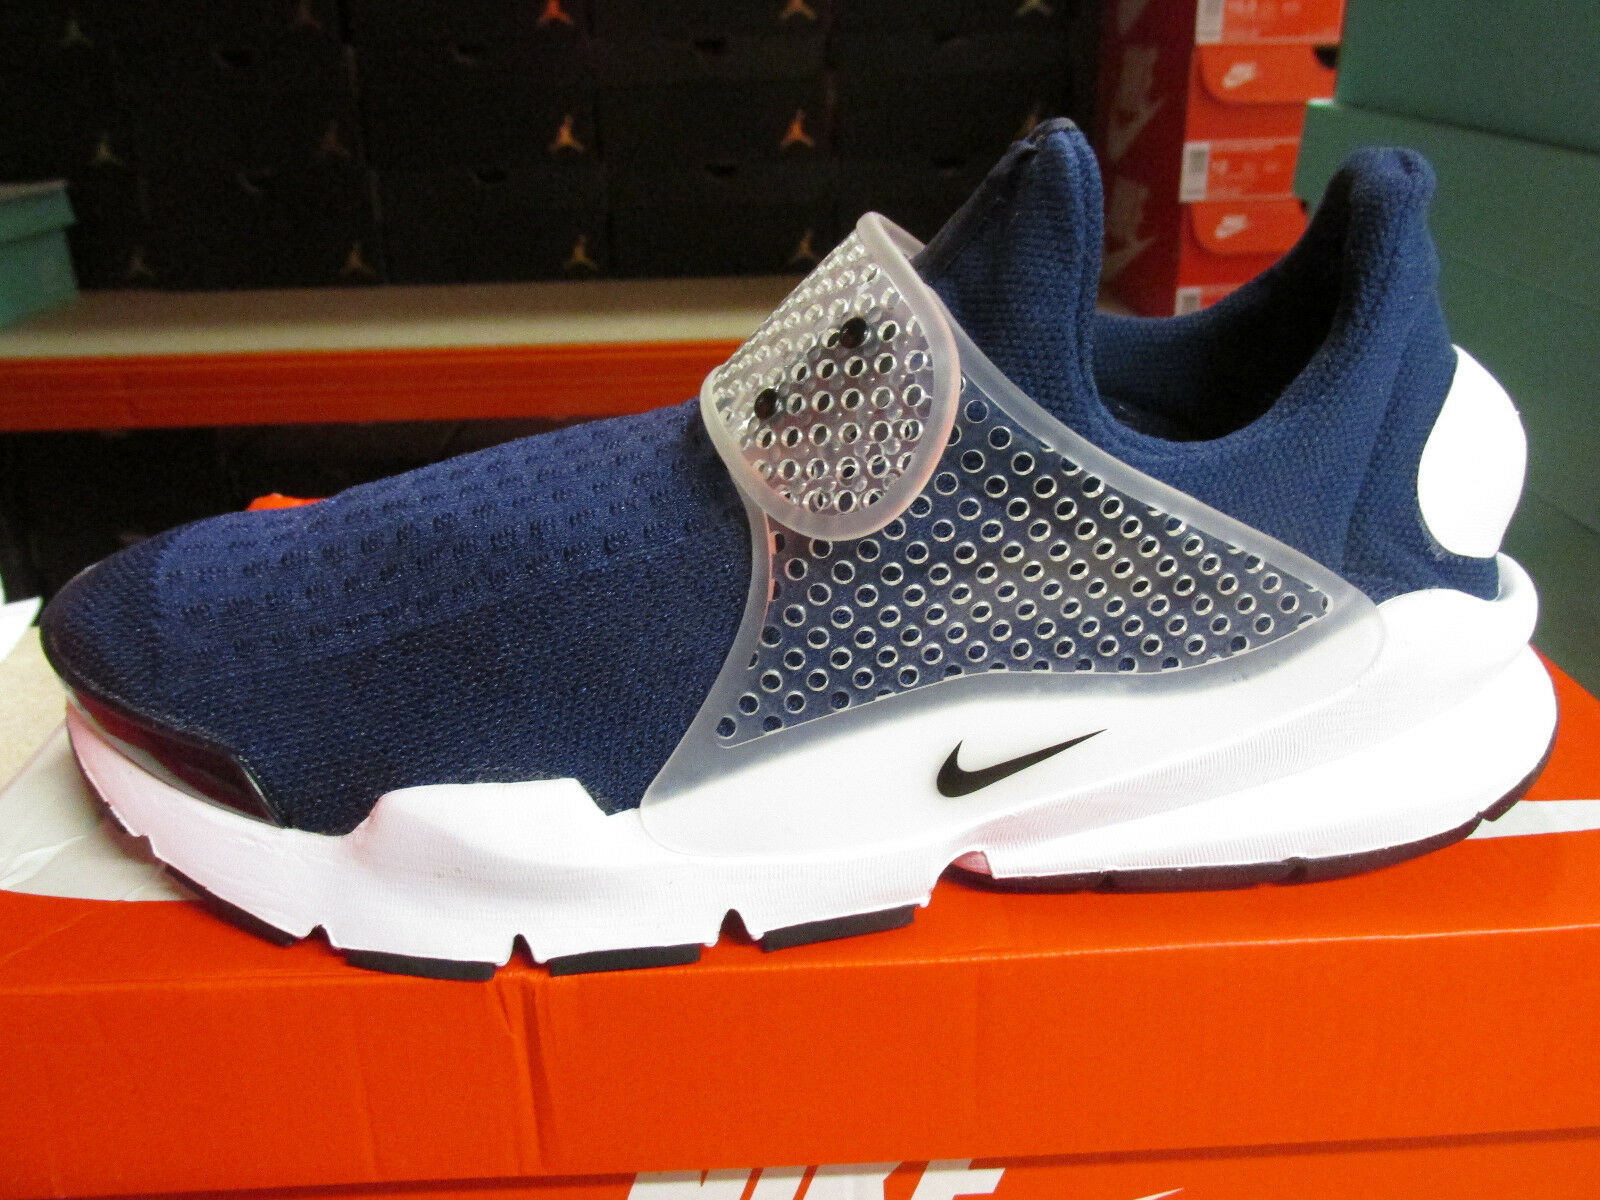 Nike Sock Dart 400 Hombre Running Trainers 819686 400 Dart Sneakers Zapatos 24a44d